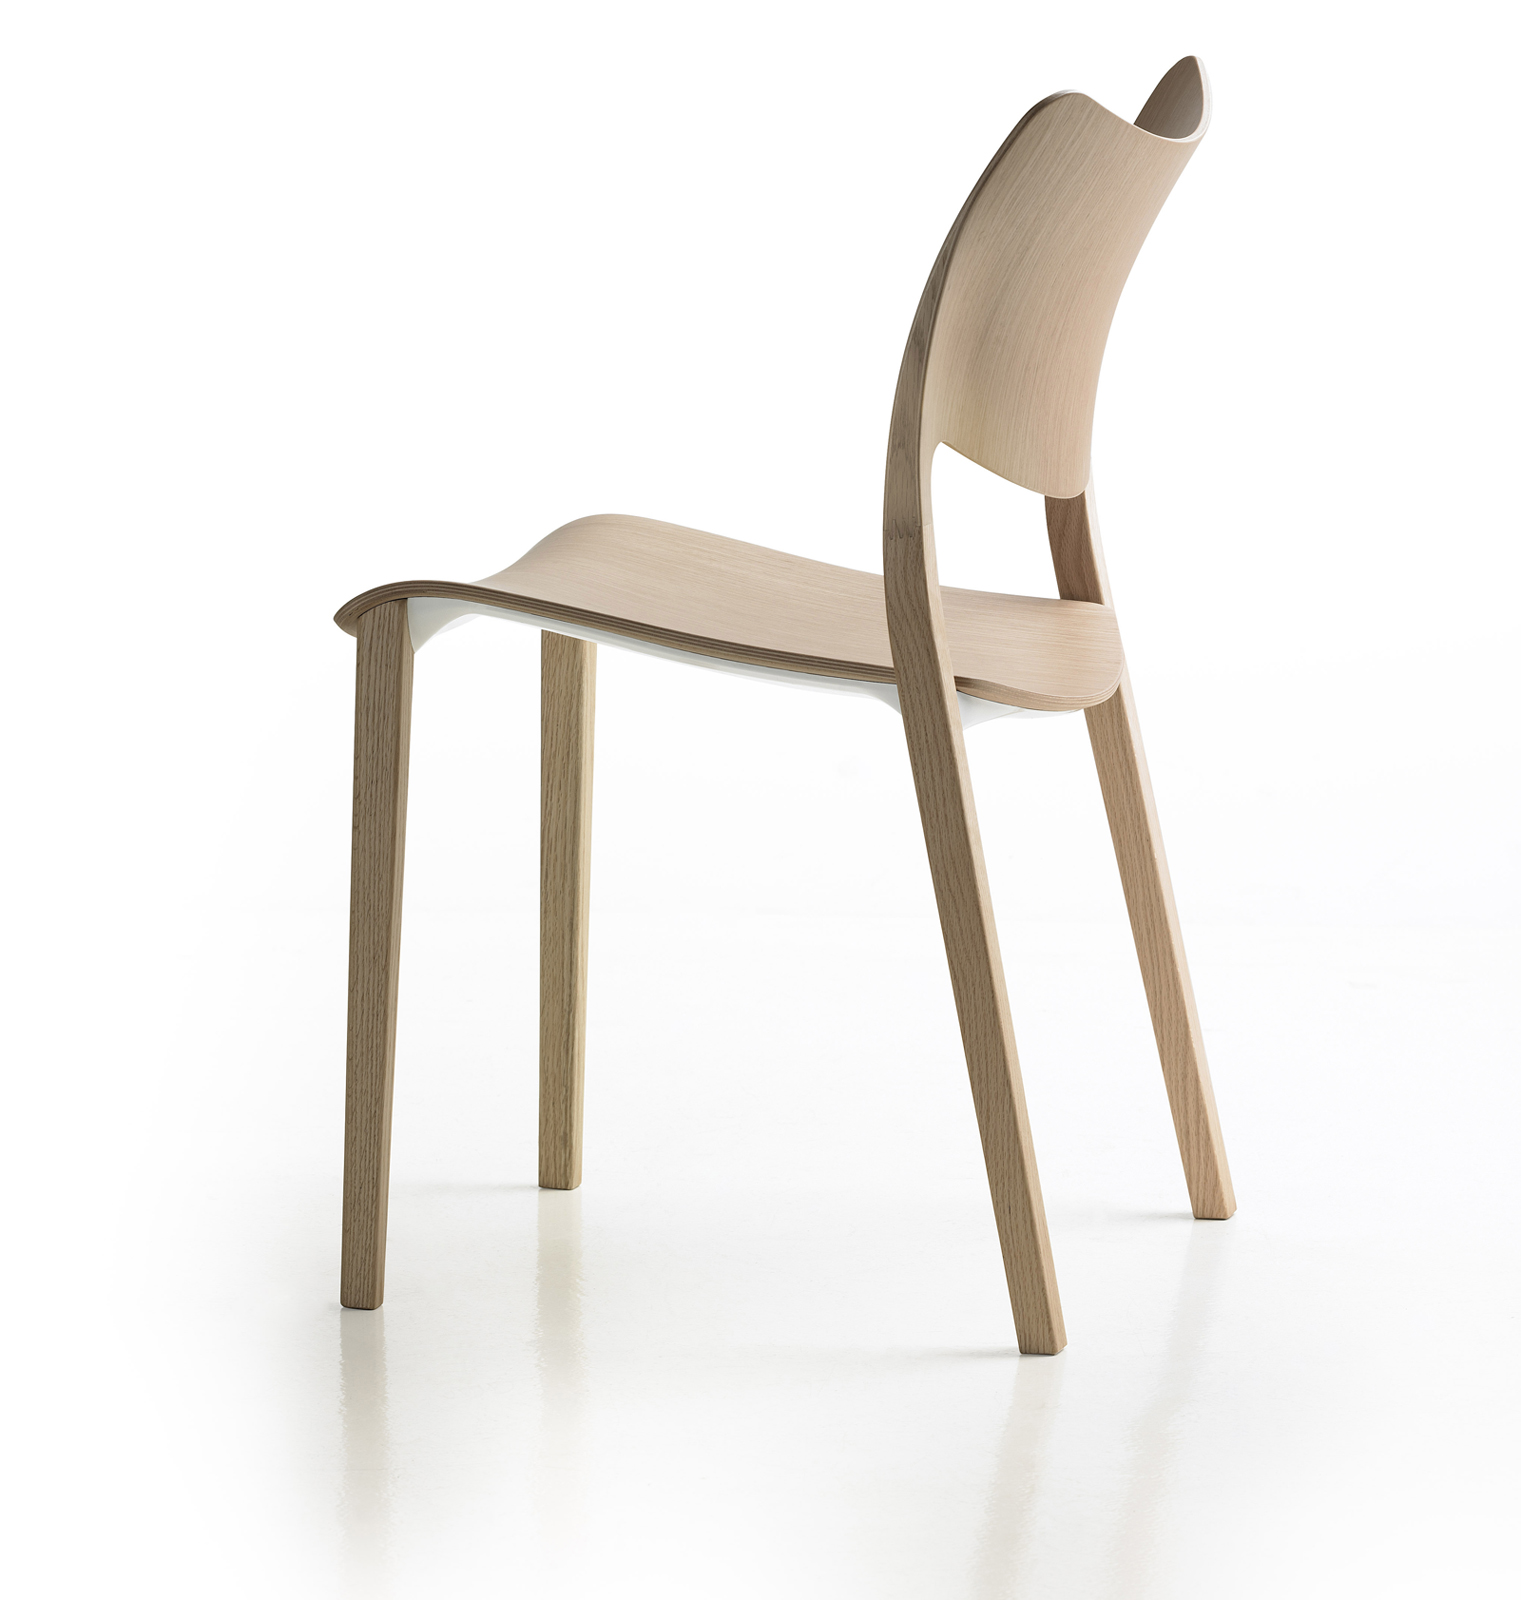 "LACLASICA, Jesus Gasca's latest design. ""It looks like a simple chair,"" says Jon, ""but it's so sophisticated. There are curves created with 3D plywood, and under the seat there's a glowing surface that keeps it all together. When you look at the chair you"